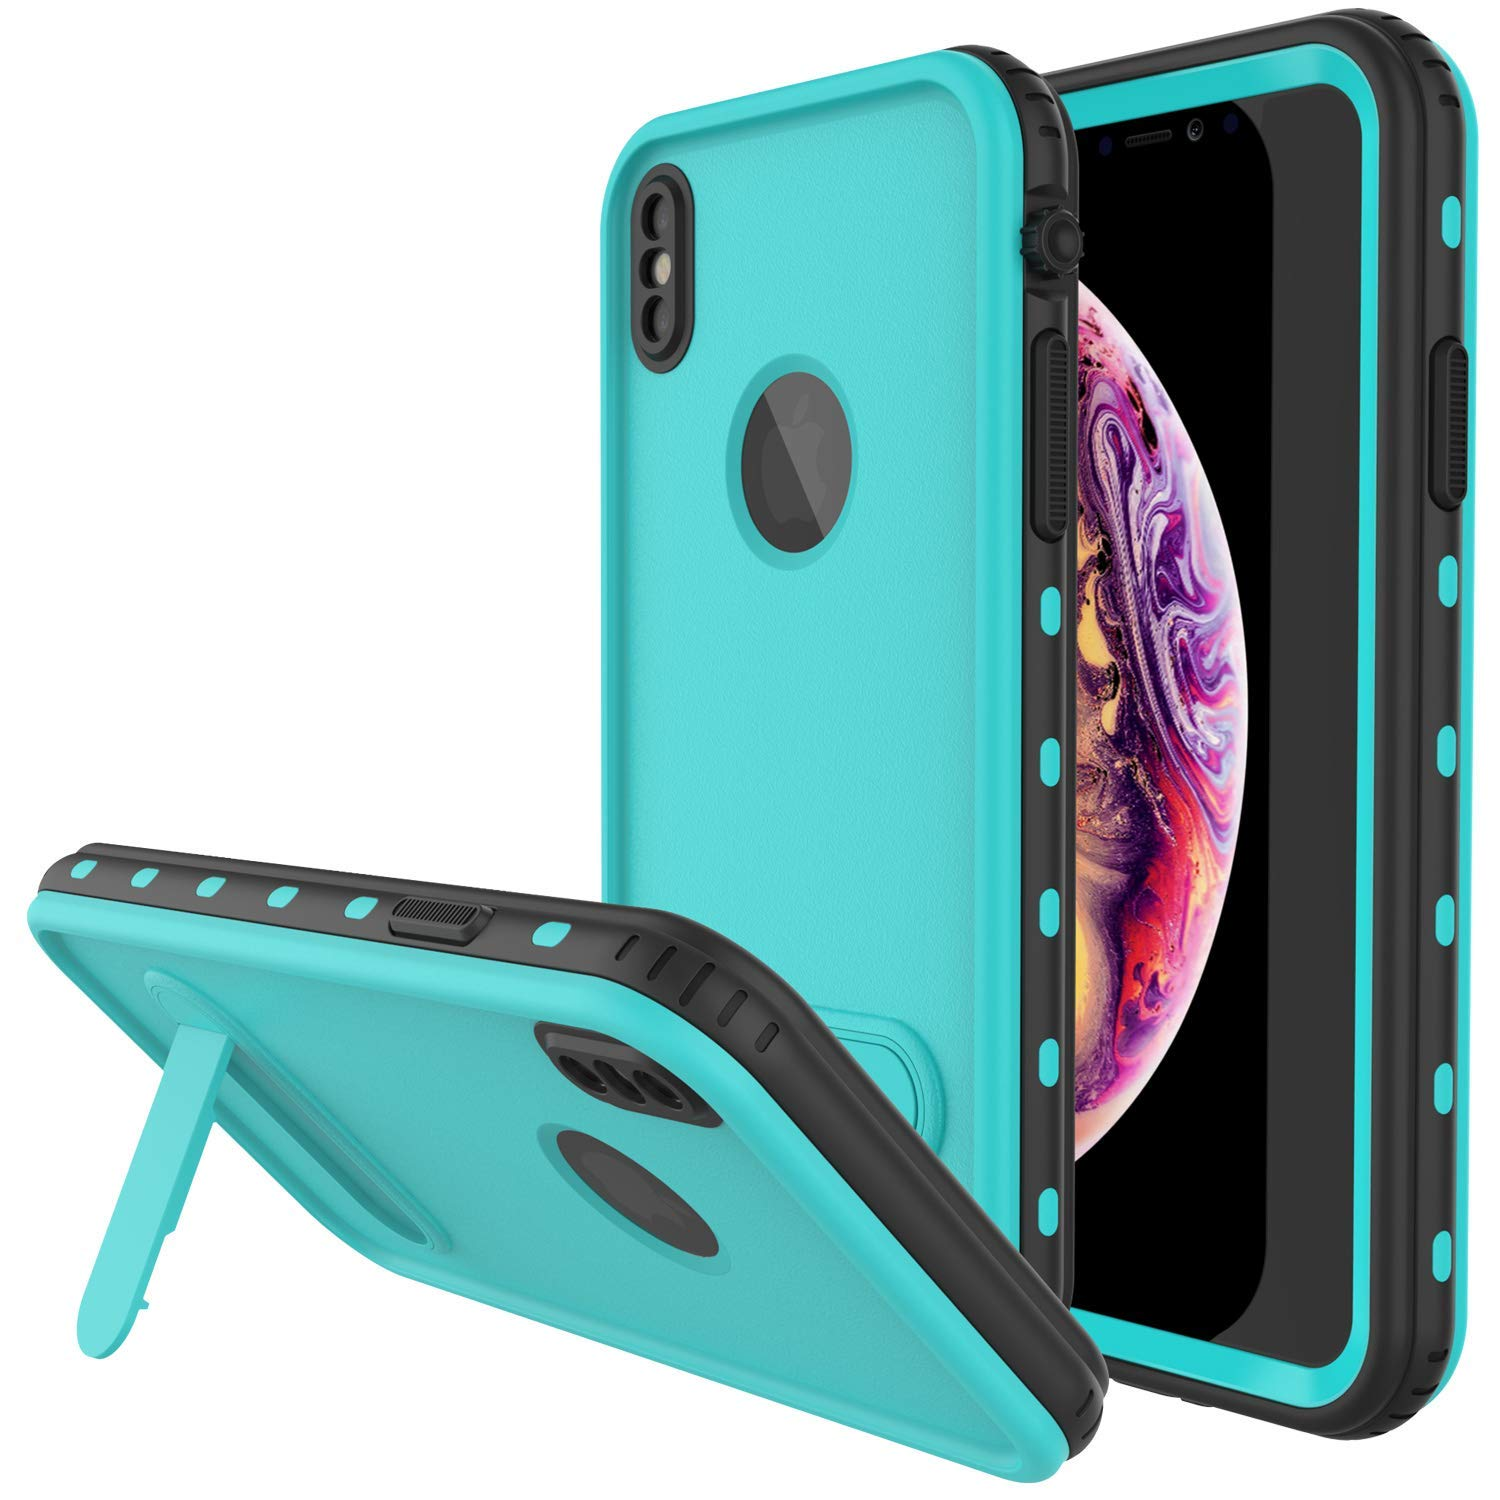 online store 528eb 15f1c iPhone XS Max Waterproof Case, Punkcase [KickStud Series] Armor Cover [Teal]